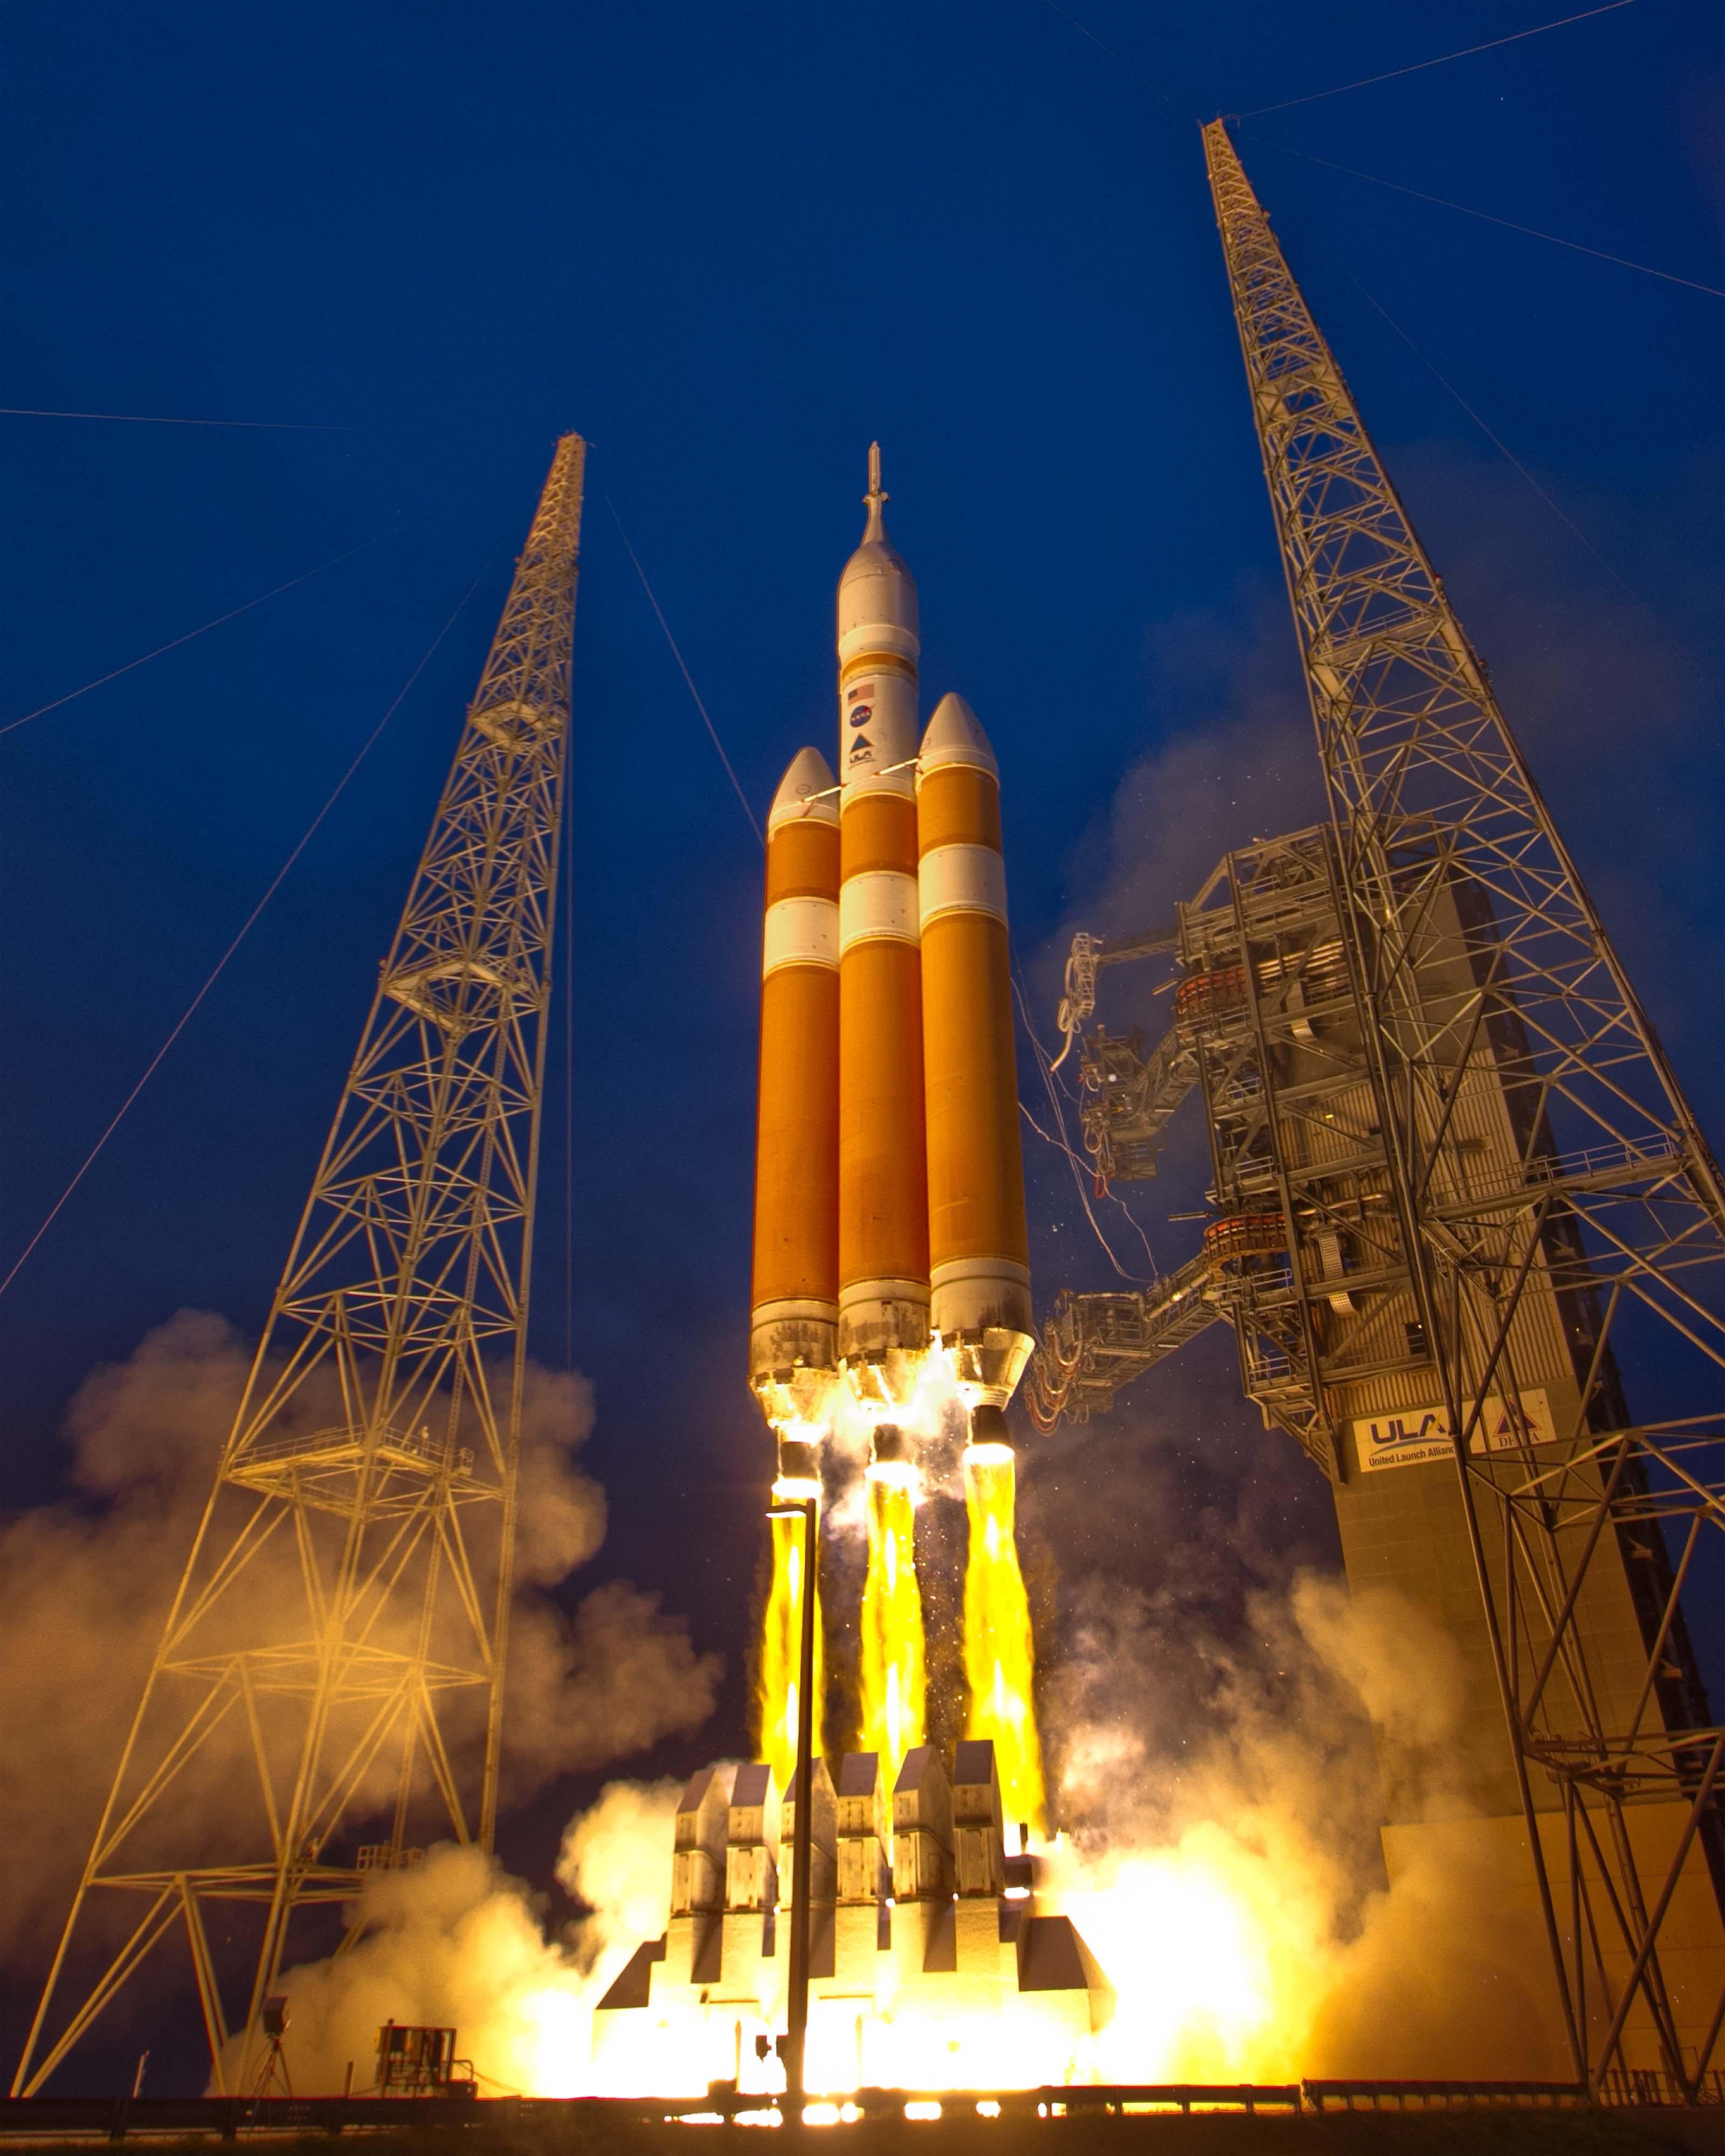 In 2014, a Delta IV Heavy launched NASA's first Orion spacecraft.